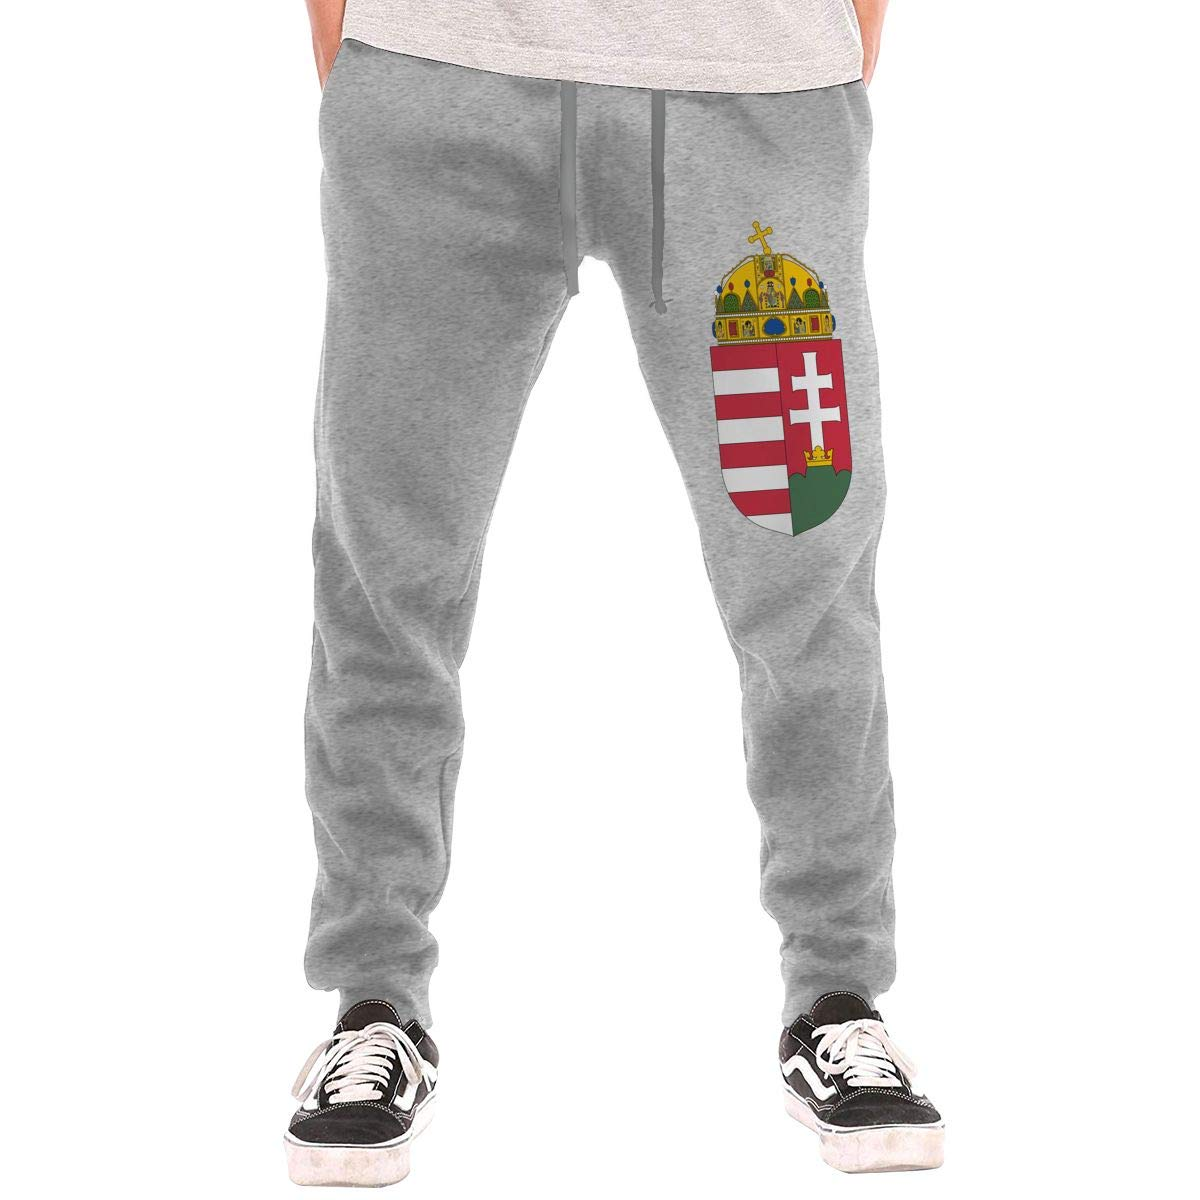 HHCW4LD Coat of Arms of Hungary Mens Joggers Casual Lounge Pajama Gym Workout Yoga Pants Casual Long Pants